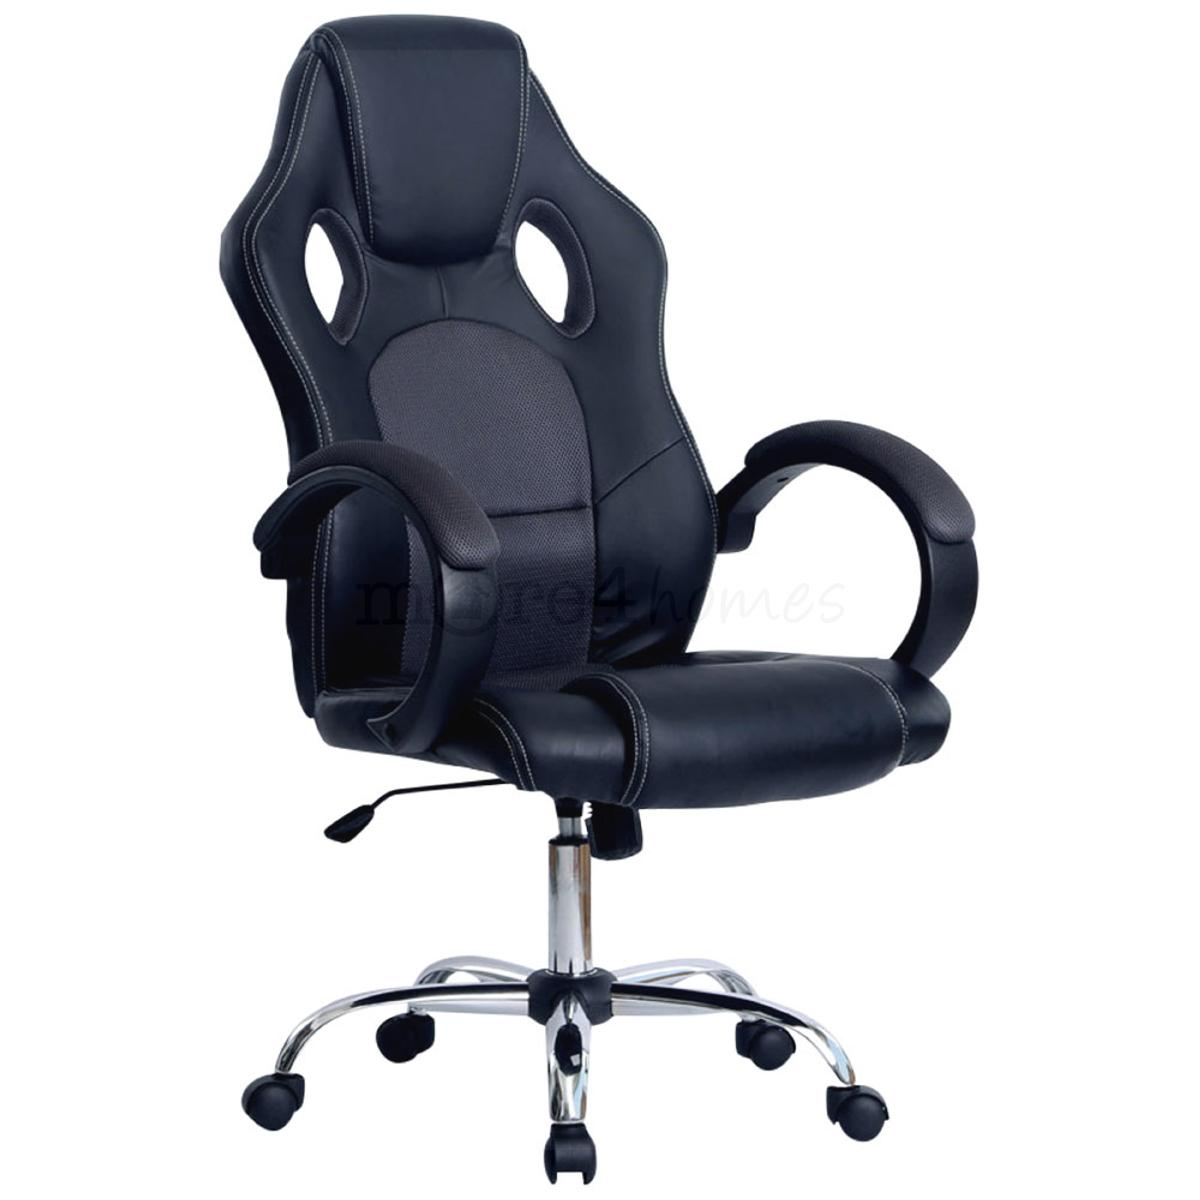 prix sport racing car office chair faux leather mesh bucket computer desk ebay. Black Bedroom Furniture Sets. Home Design Ideas